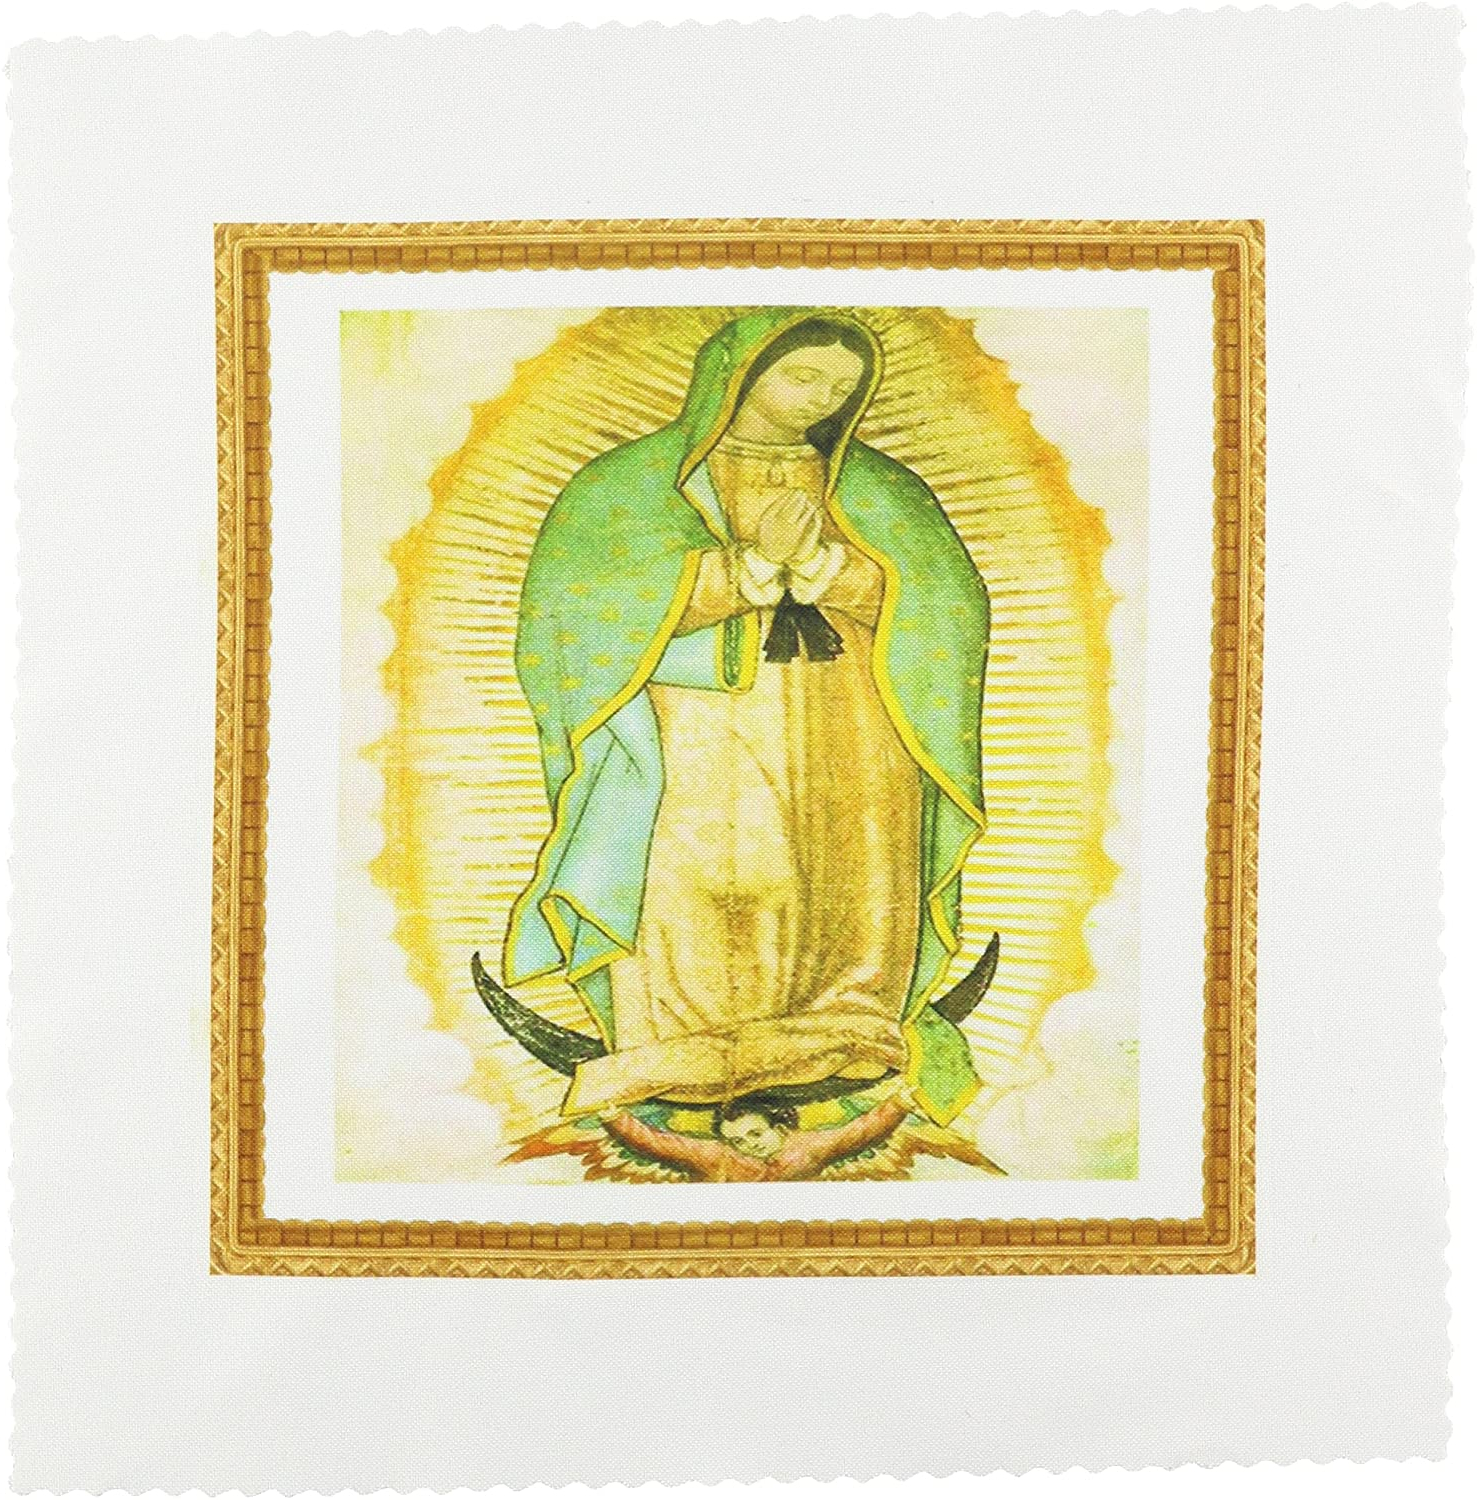 Amazon: 3drose Qs 60684 1 Photo Of Painting Of Our Lady Pertaining To Widely Used Blended Fabric Our Lady Of Guadalupe Wall Hangings (View 16 of 20)